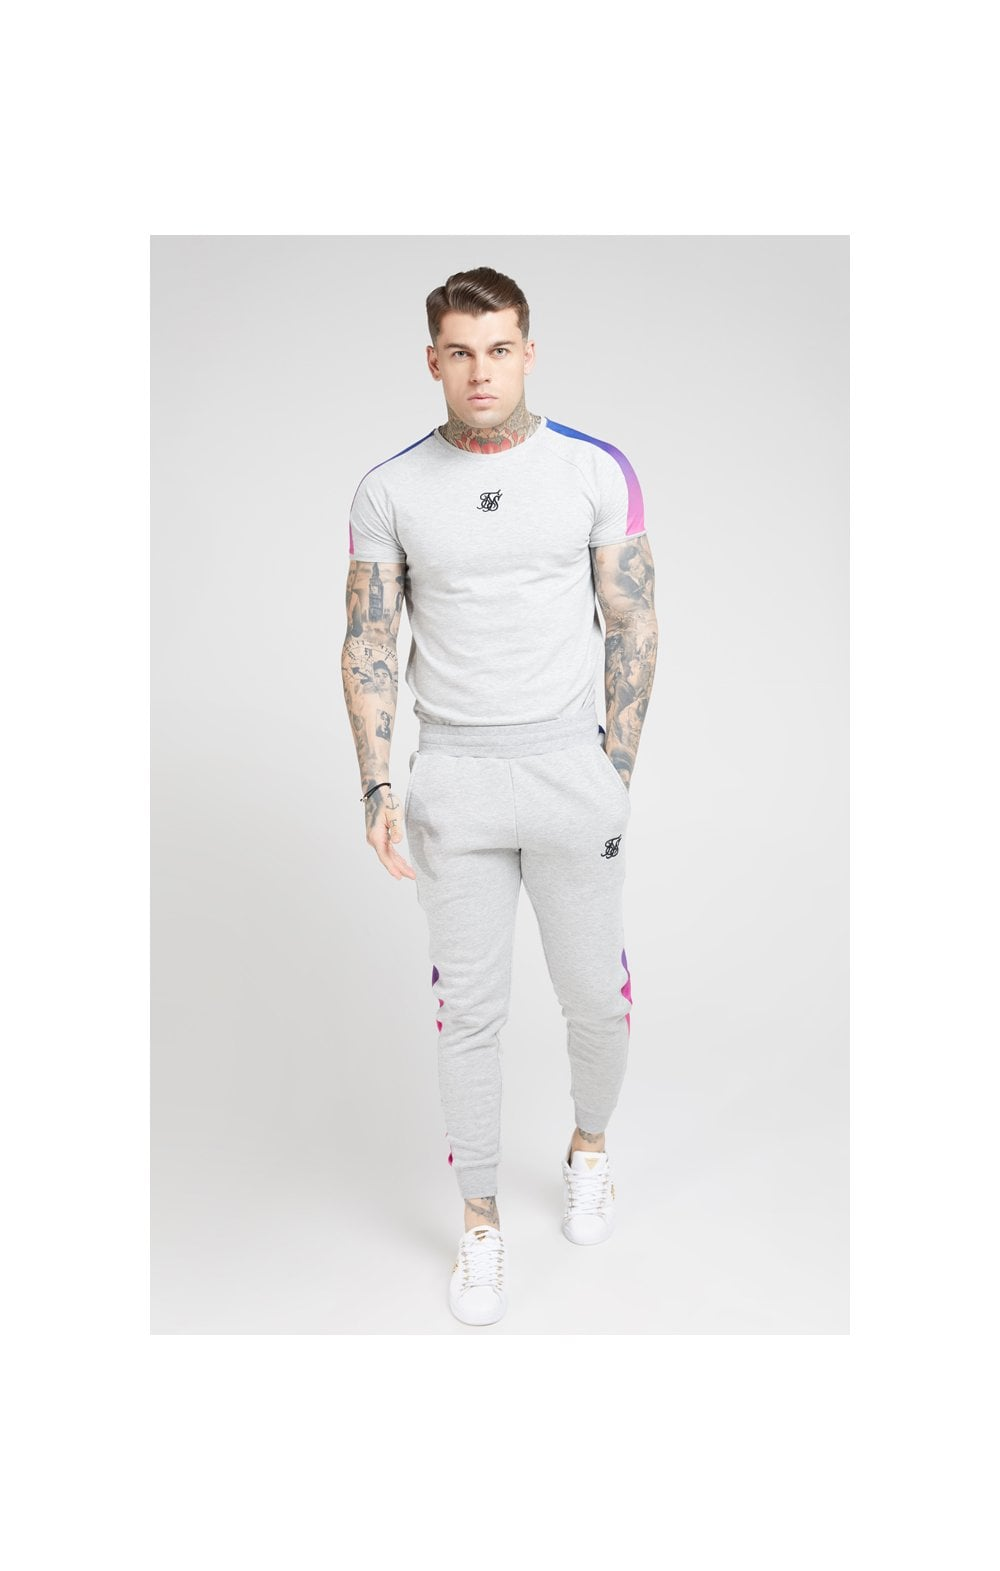 SikSilk S/S Marl Fade Panel Tech Tee – Grey Marl & Neon (3)